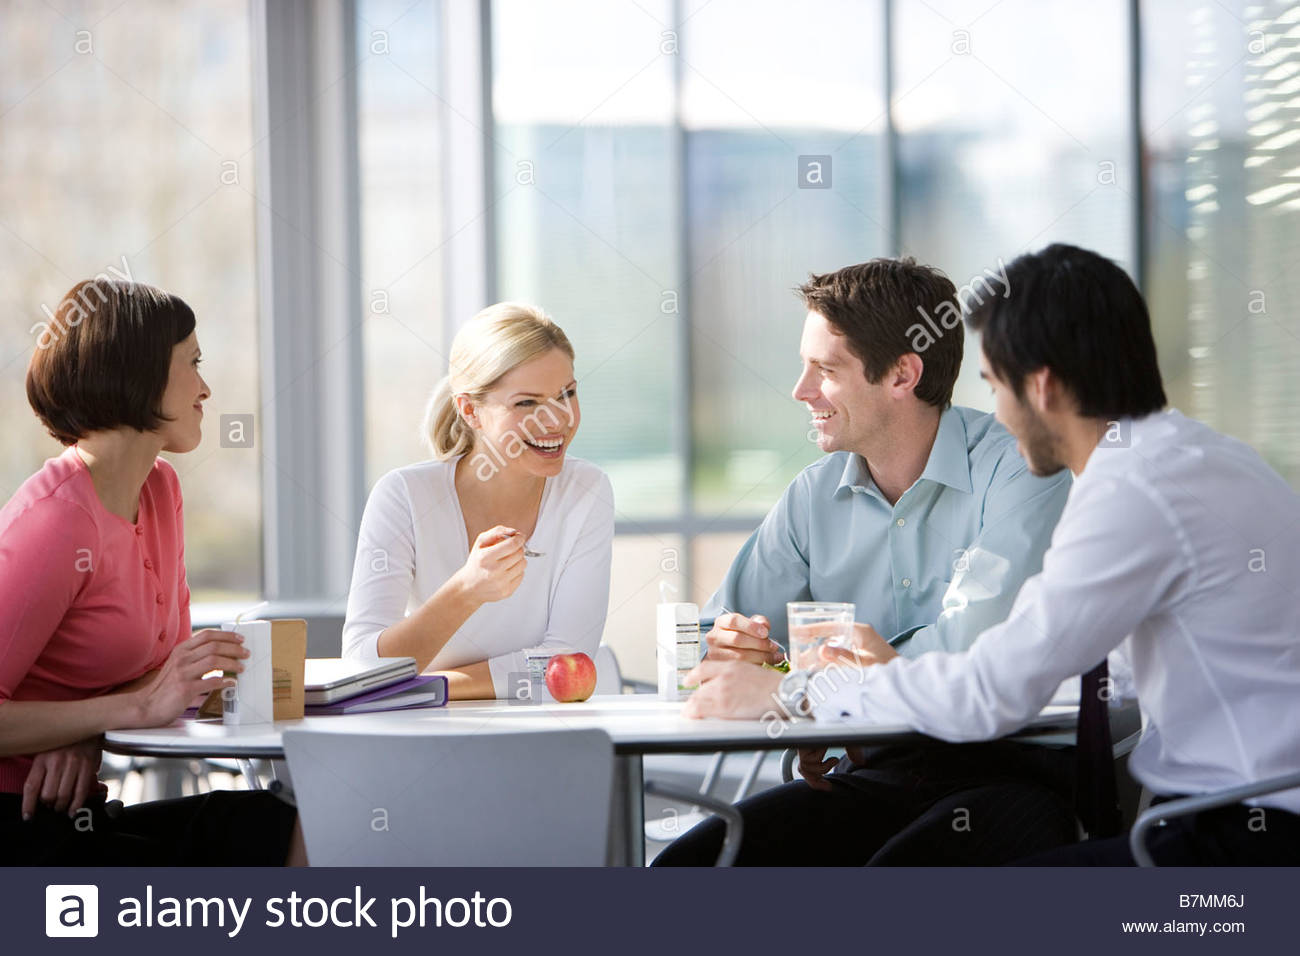 office canteen. four office colleagues eating lunch in an canteen or cafe